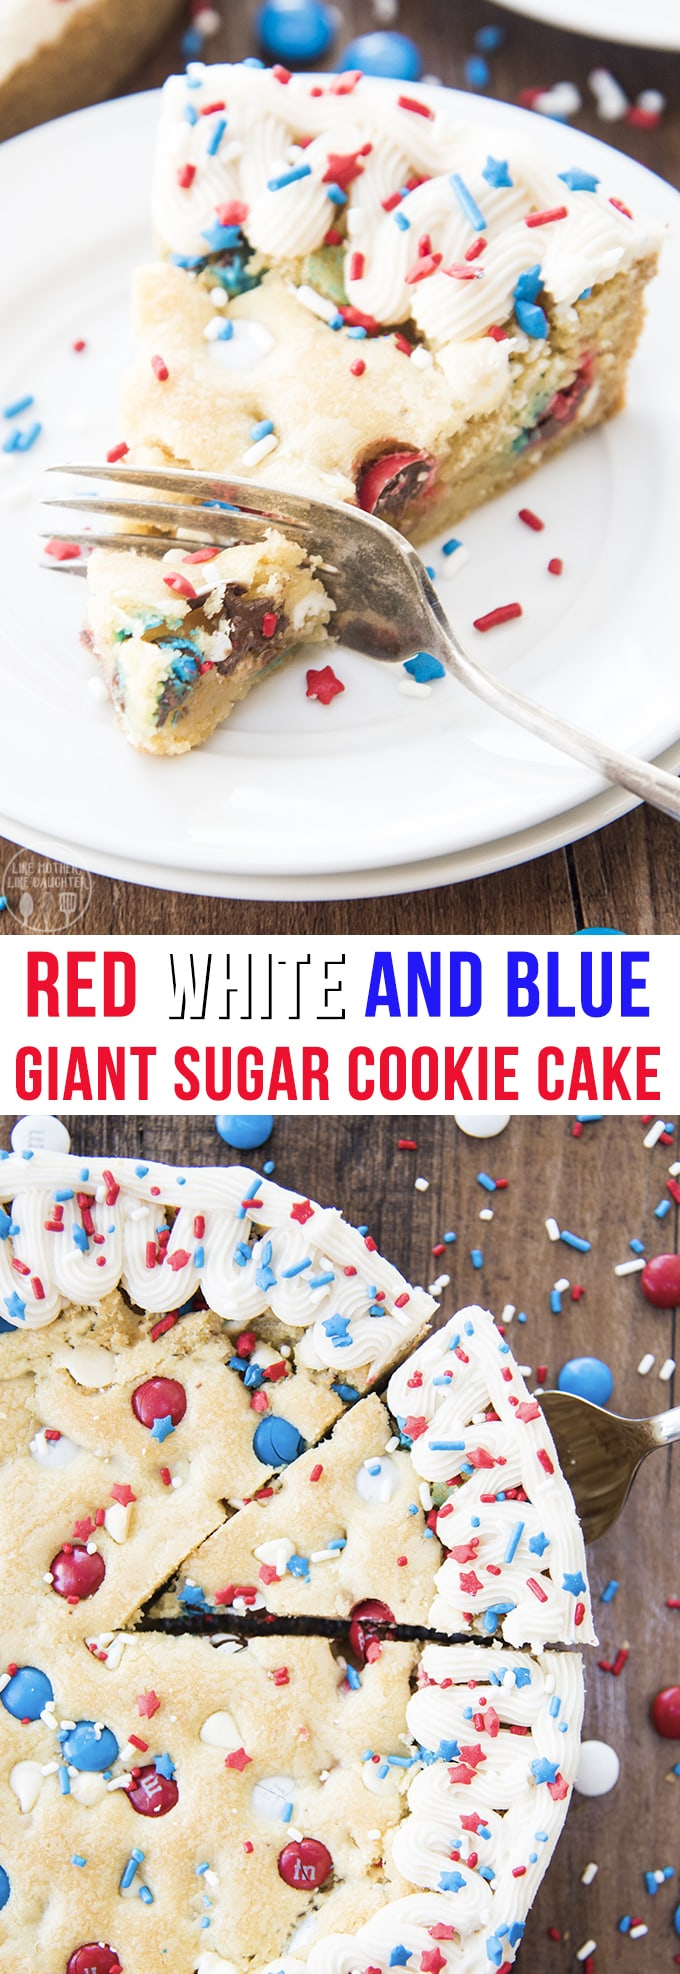 This giant sugar cookie cake is a perfect red white and blue, patriotic dessert for Memorial Day or the 4th of July! Its loaded with red, white, and blue m&ms and white chocolate chips and topped with a simple buttercream and fun sprinkles for the perfect summer dessert!